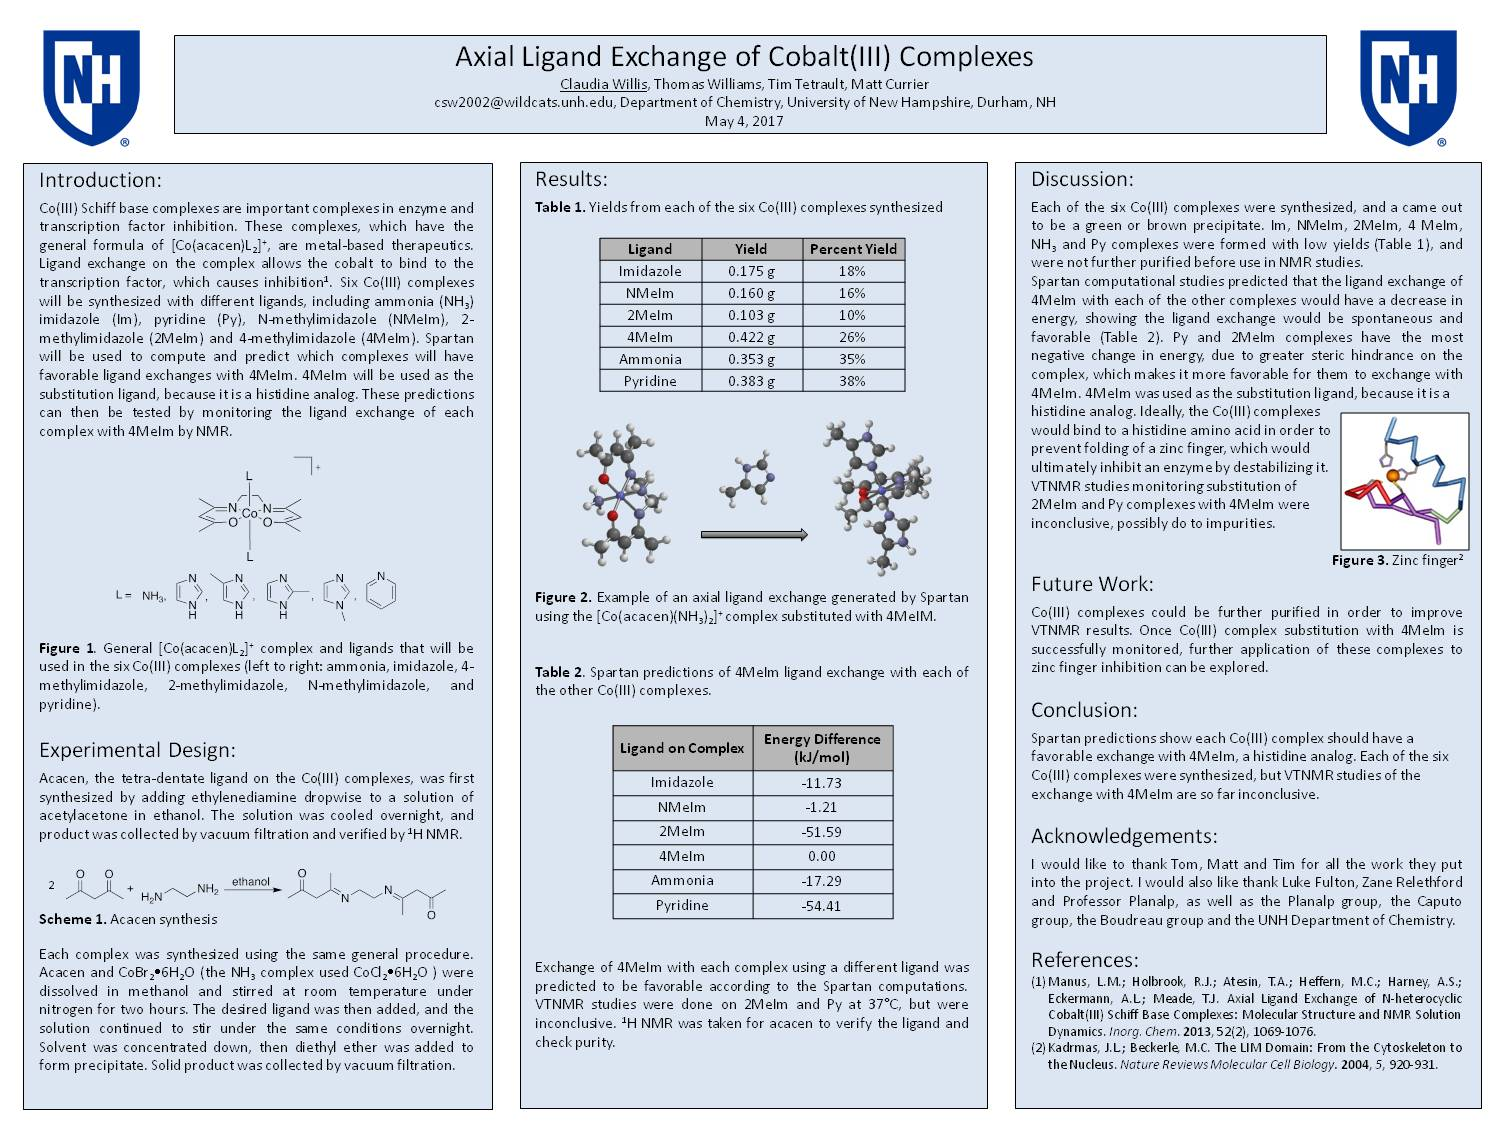 Axial Ligand Exchange Of Cobalt(Iii) Complexes by csw2002